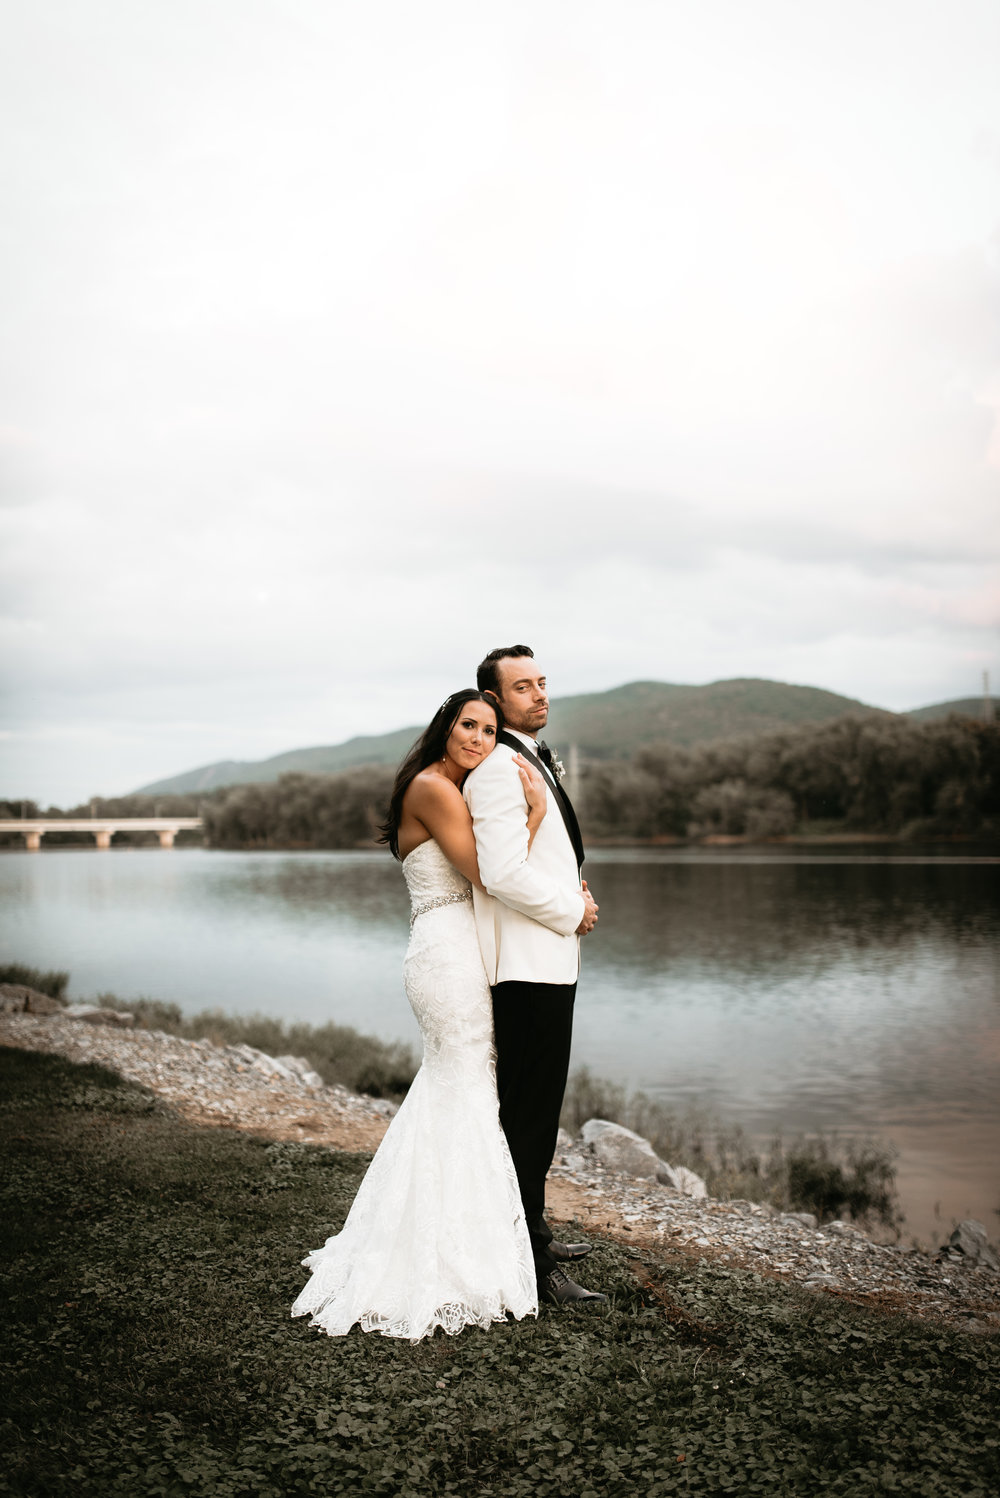 Wedding at the Pajama Factory  in Williamsport PA by Wedding photographer in Bloomsburg PA